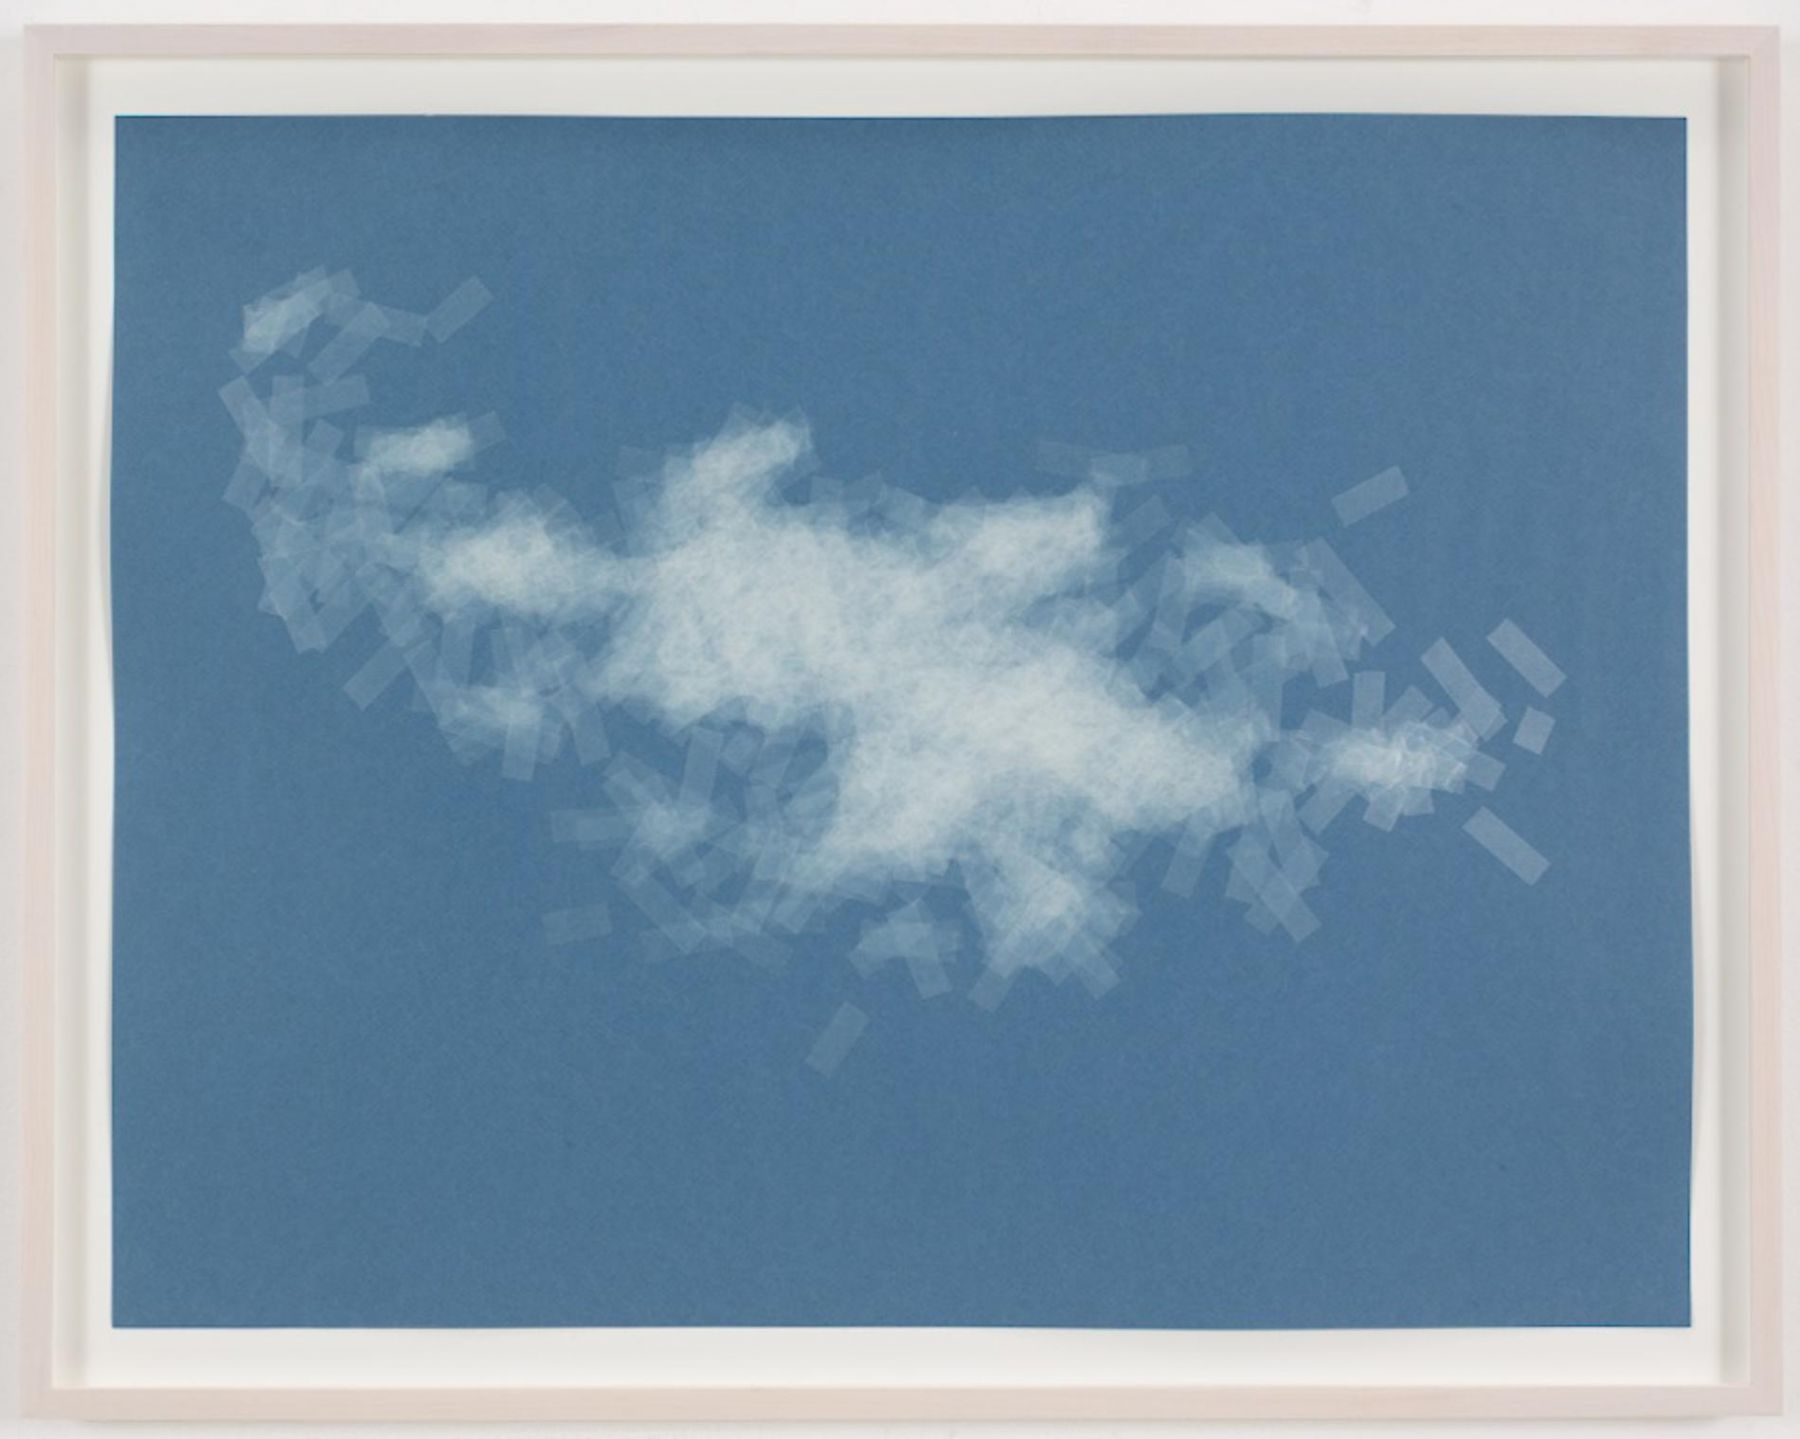 , SPENCER FINCH, Cloud (cumulus fractus, Paris), 2014, Scotch tape on paper, 19 3/4 x 25 1/2 in. (sheet), 21 5/8 x 27 1/2 in. (framed)